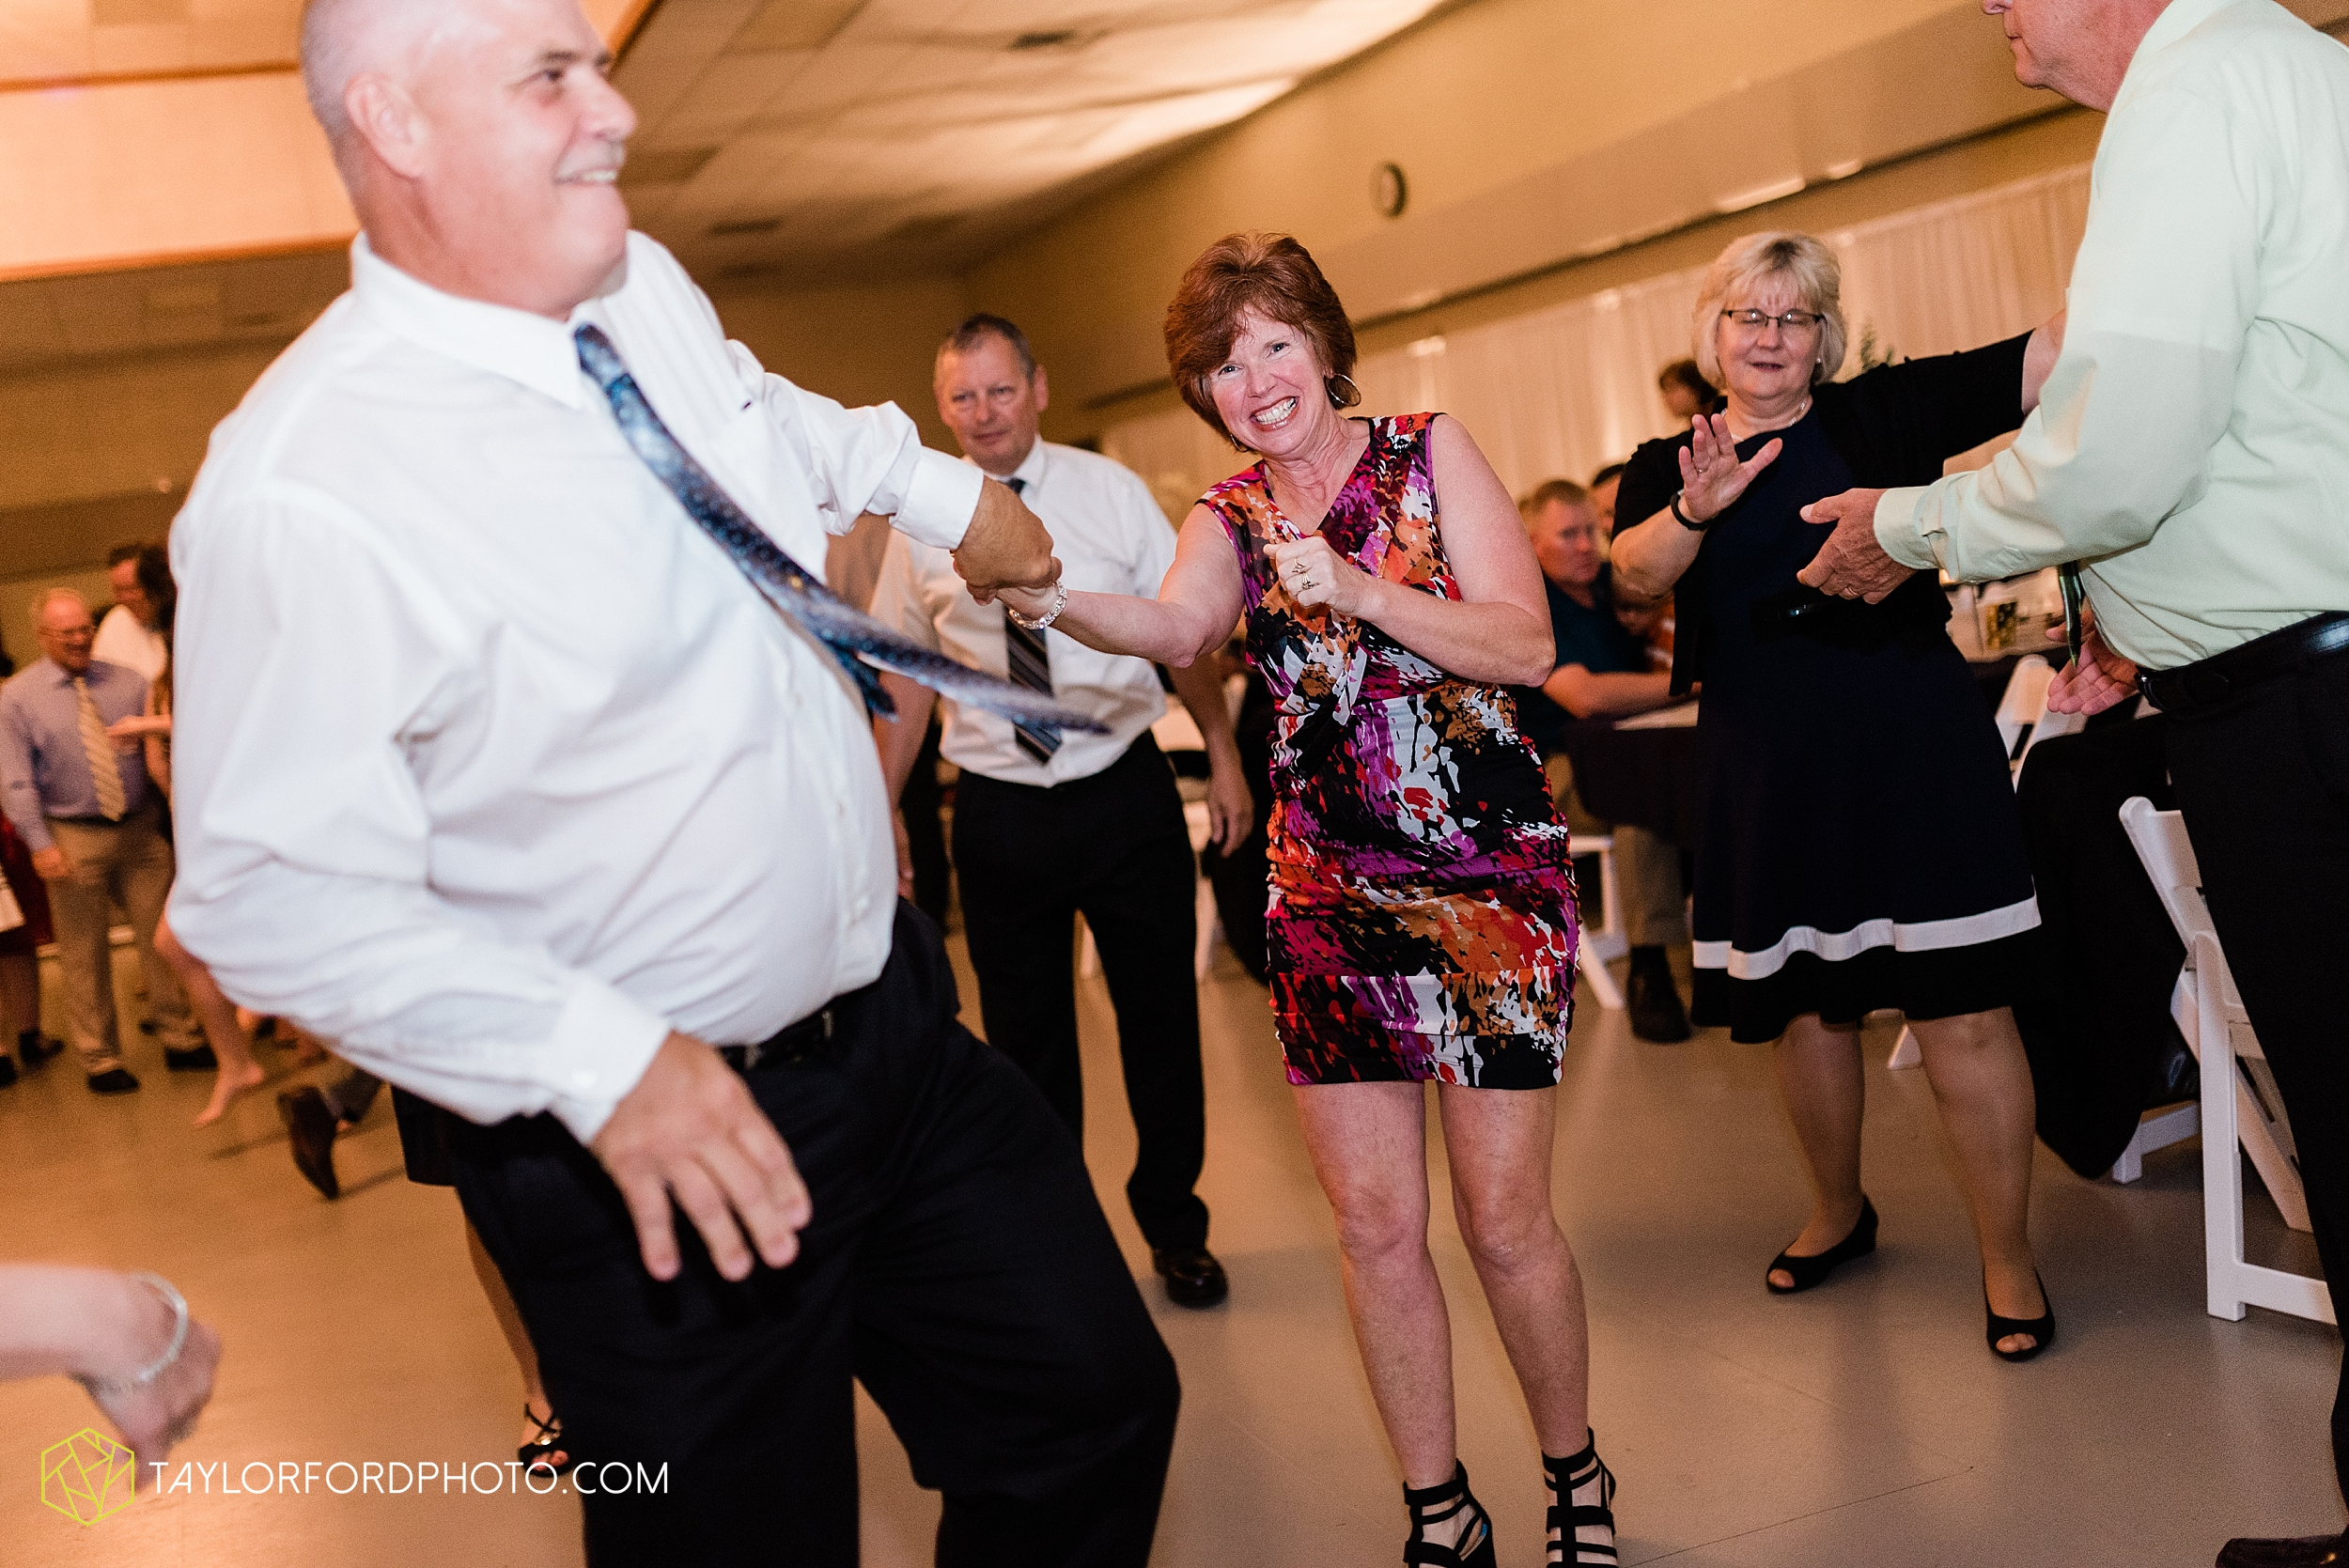 gayle-rayman-mike-steele-ottoville-ohio-wedding-immaculate-conception-parish-center-wedding-sycamore-lake-winery-wannamachers-photographer-taylor-ford-photography_0451.jpg